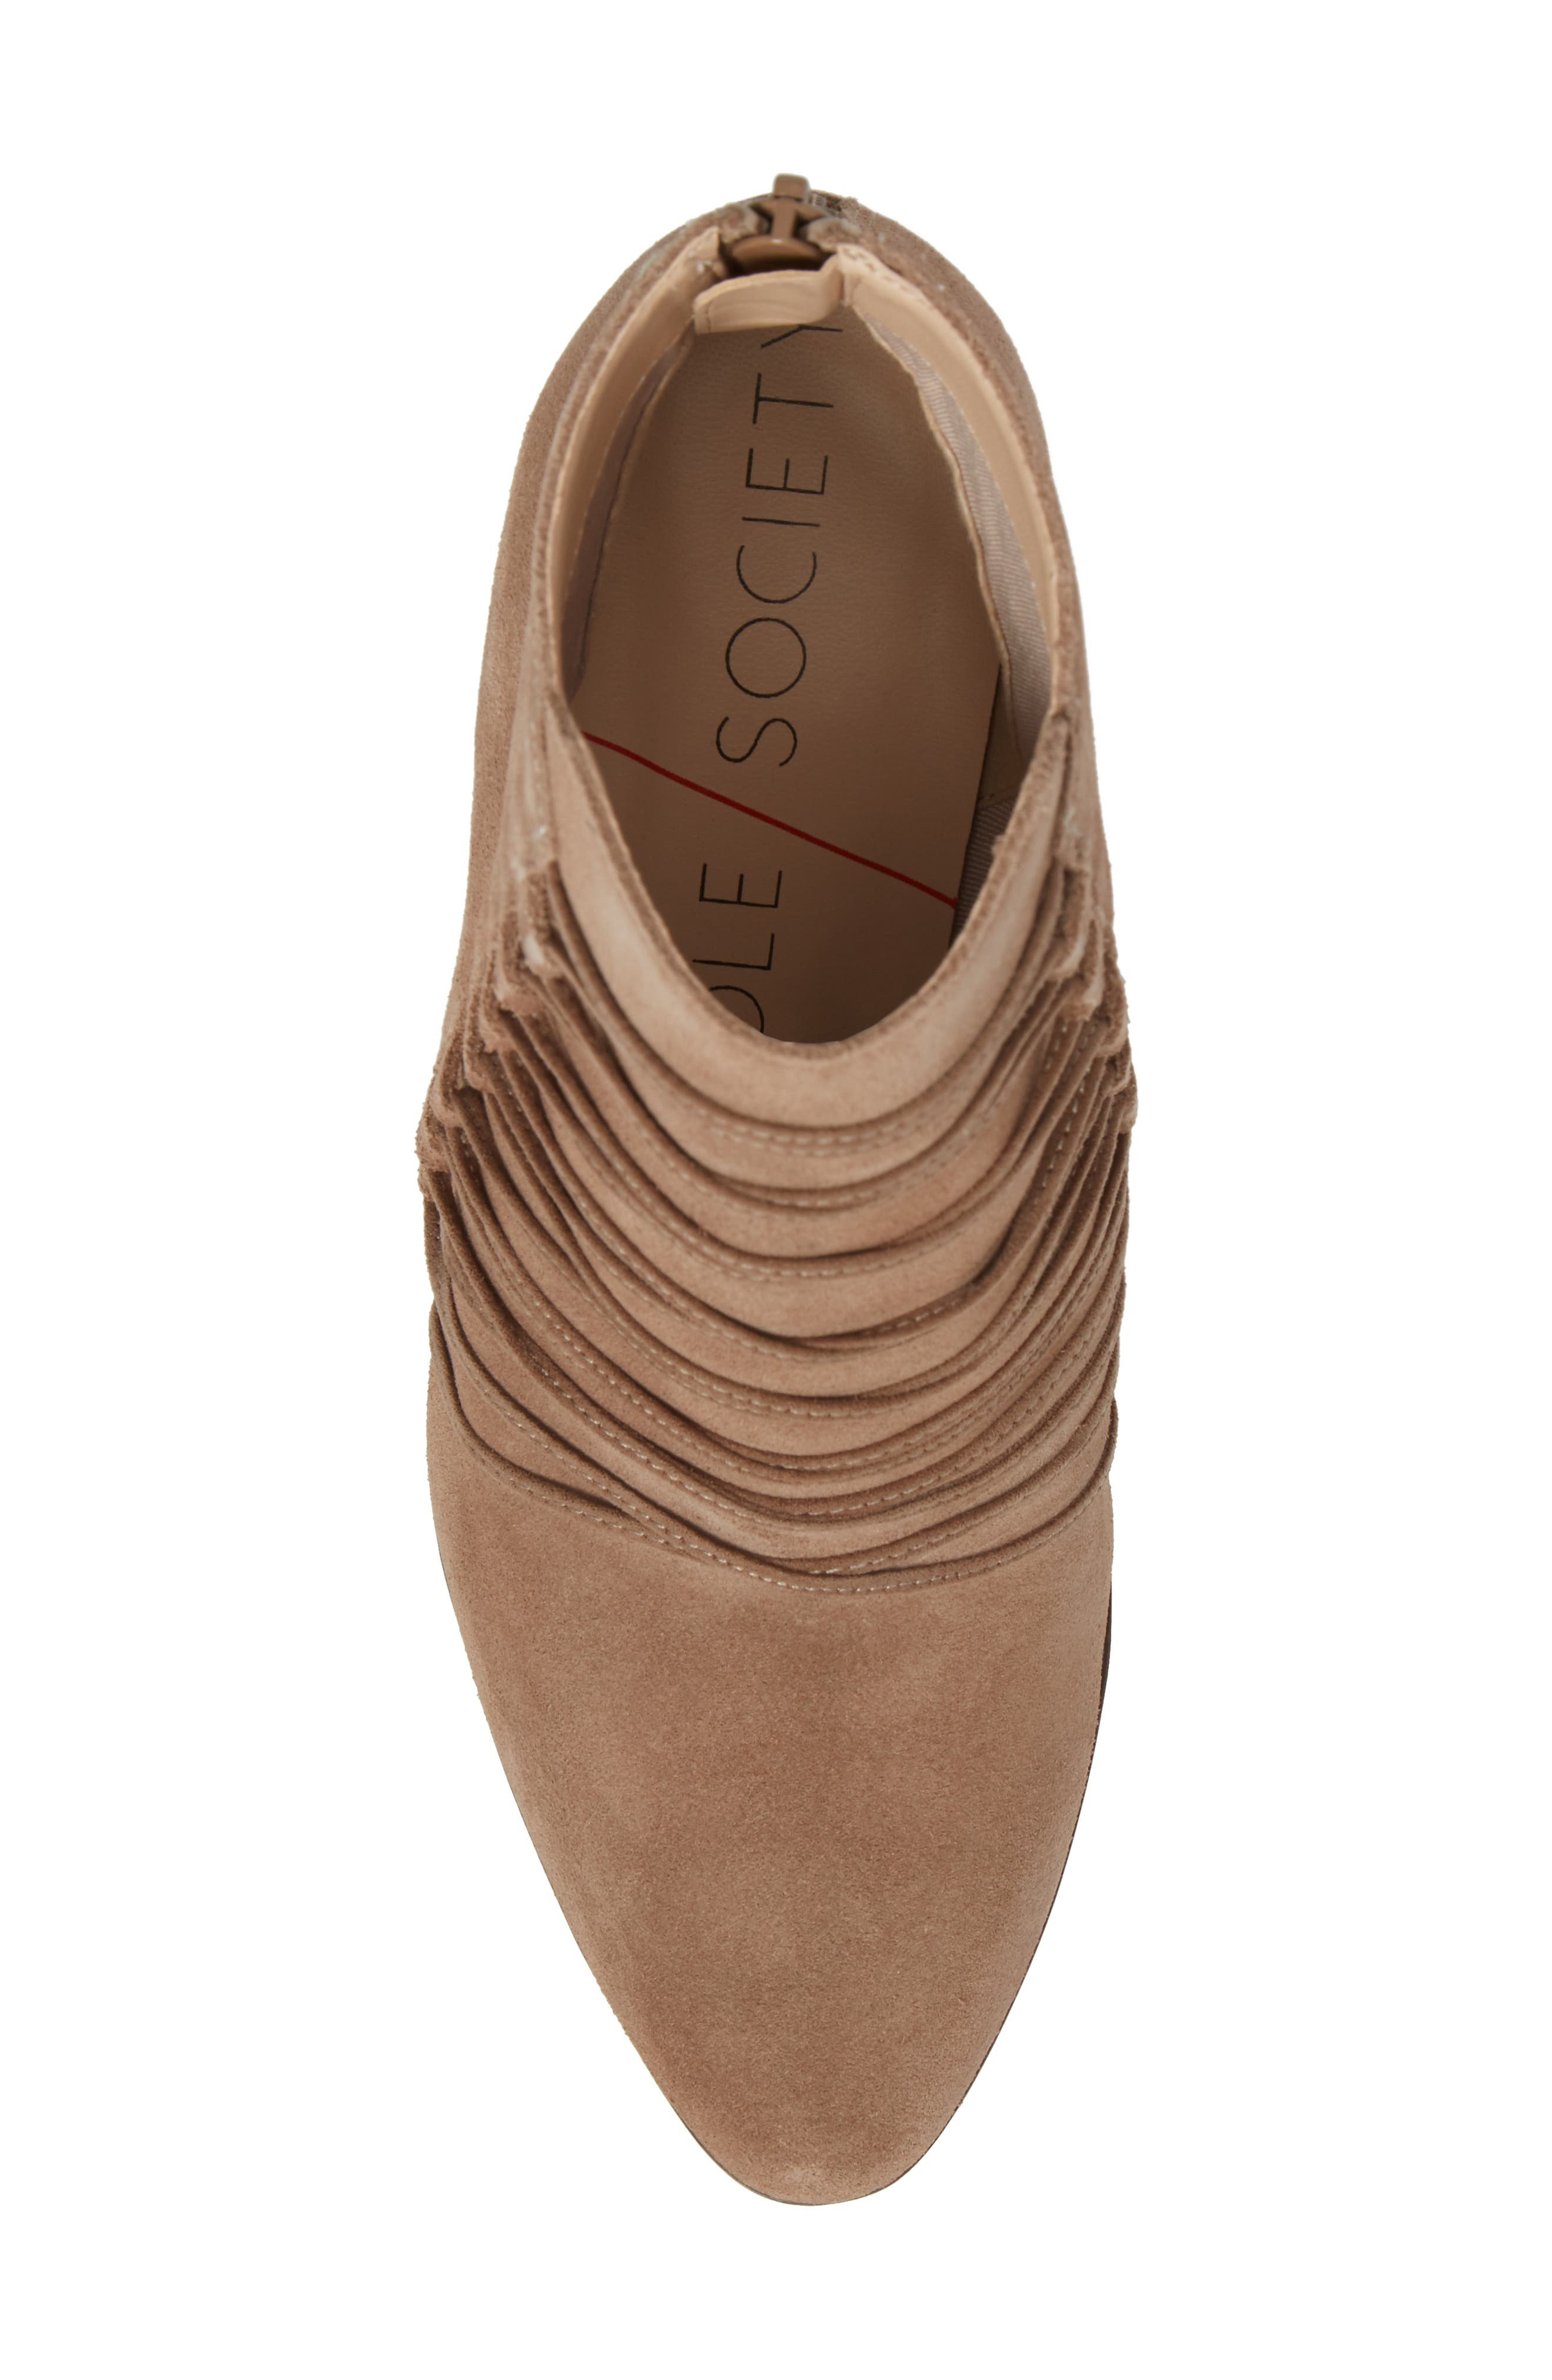 Bellevue Bootie,                             Alternate thumbnail 5, color,                             Night Taupe Suede